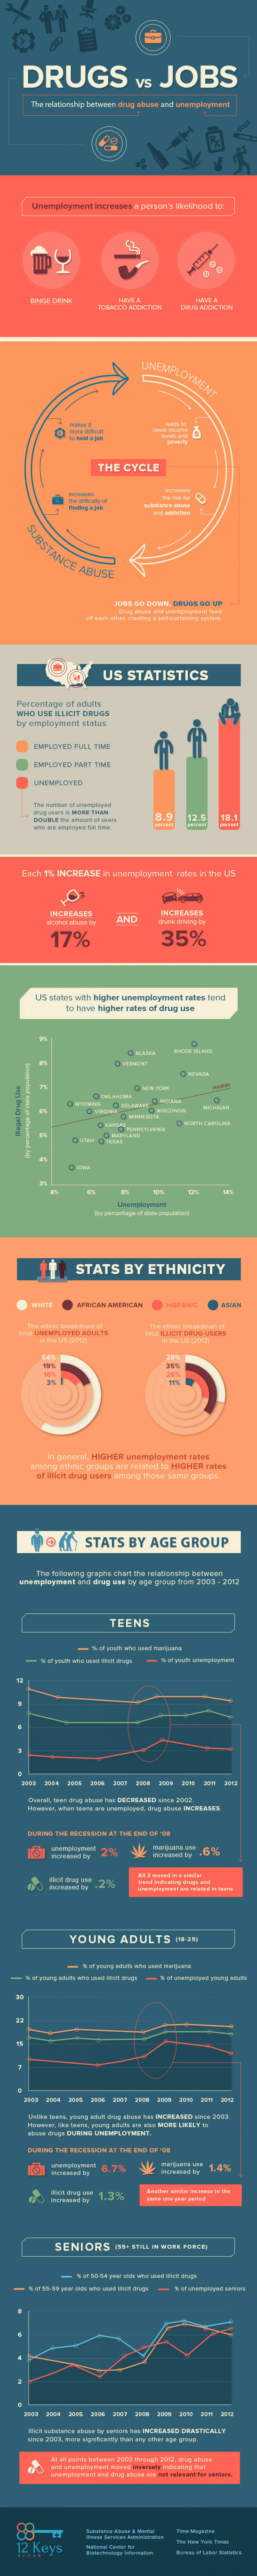 Drugs vs. Jobs: The Relationship between Drug Abuse & Unemployment Infographic